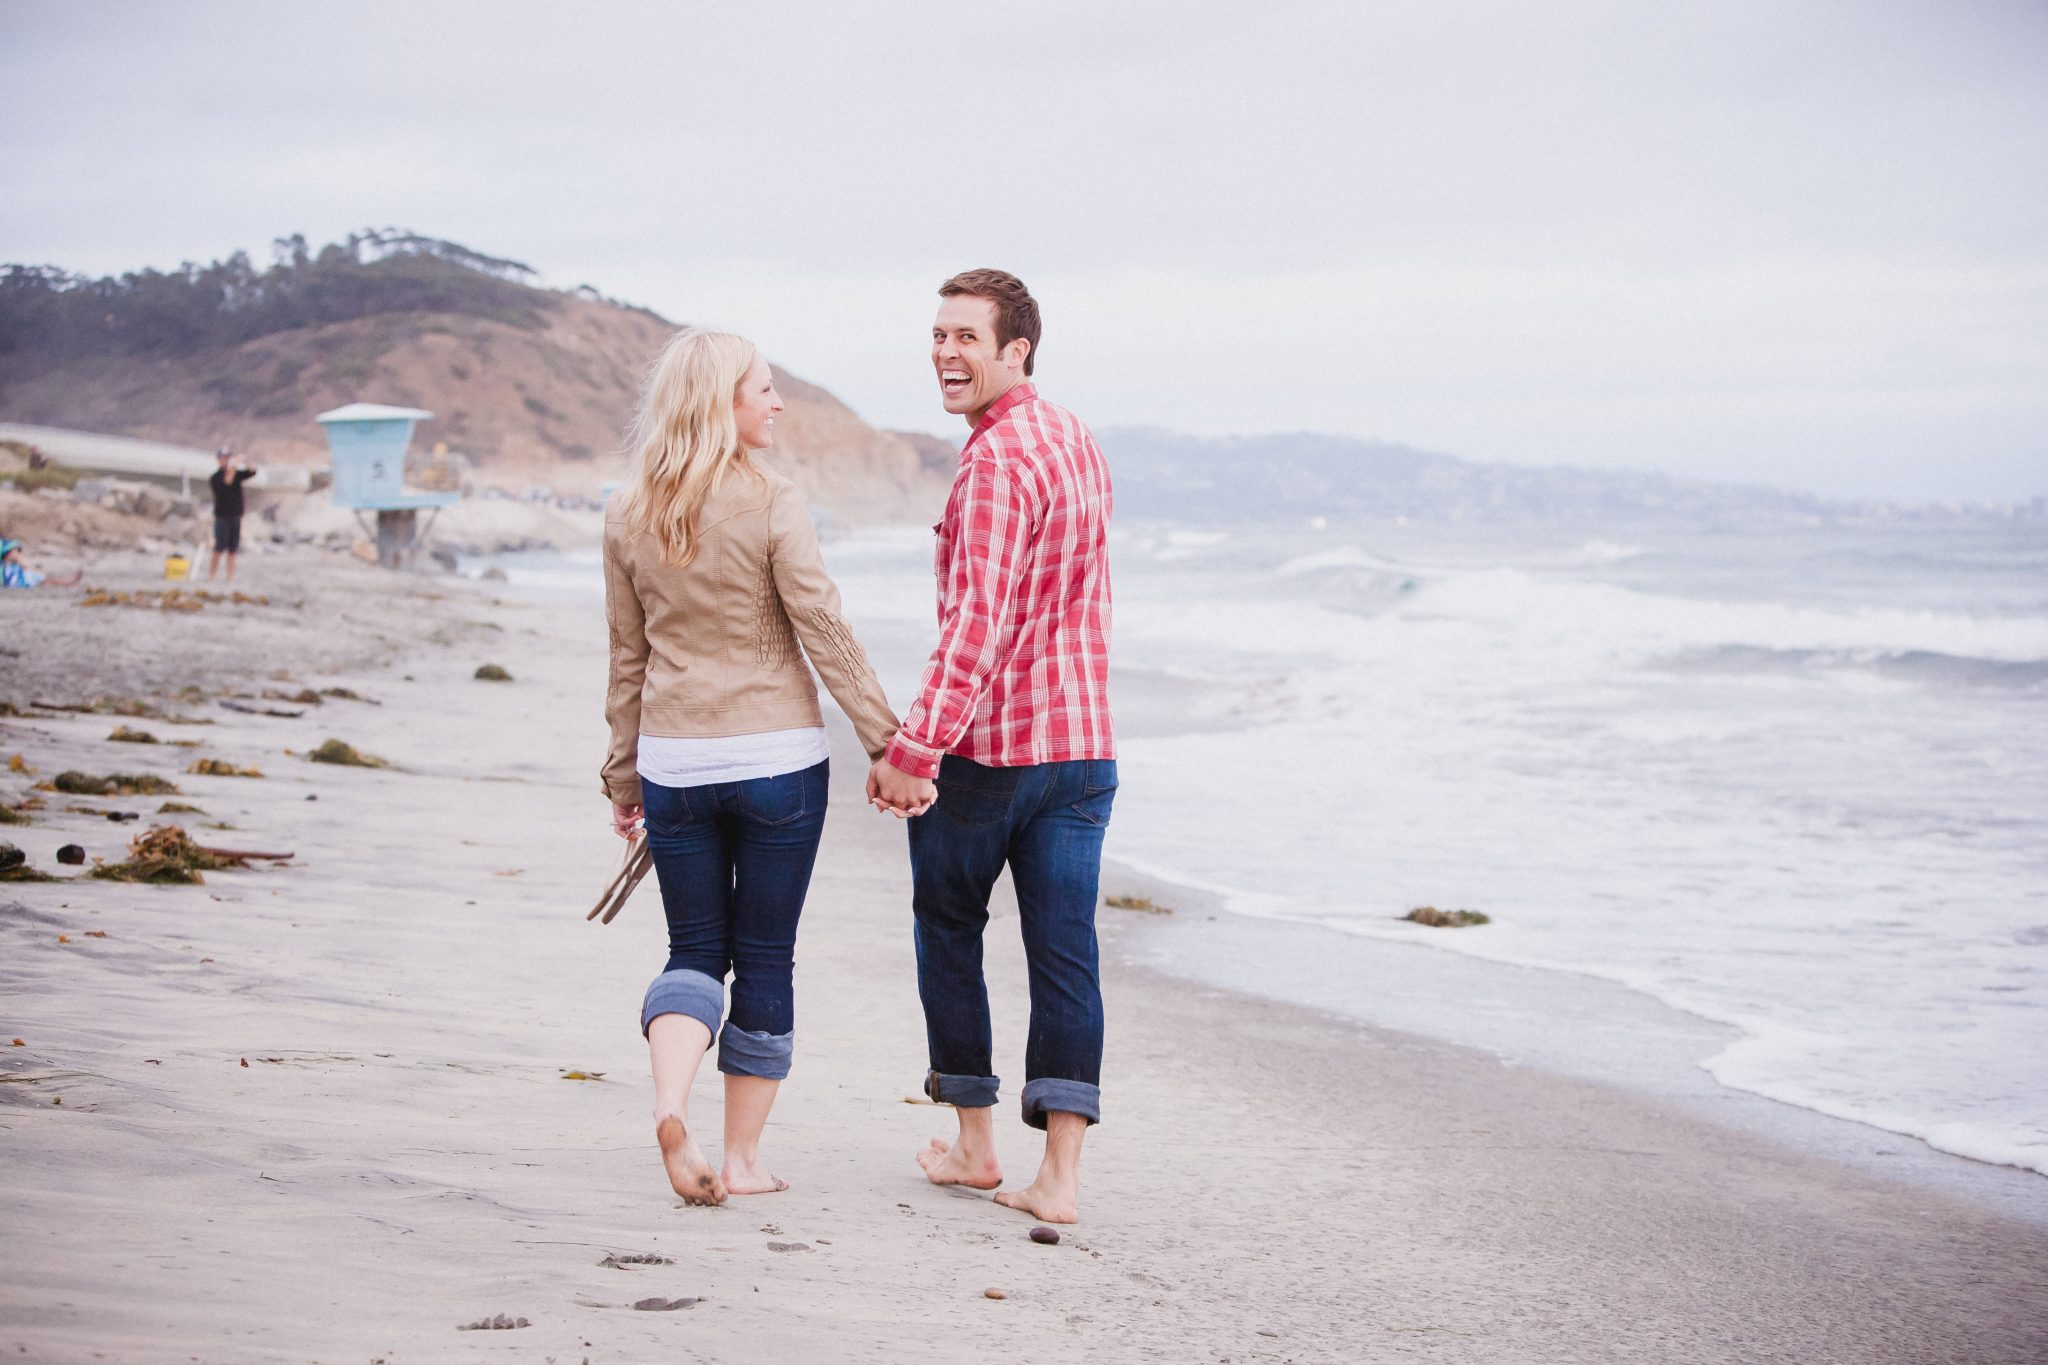 c2e03a4863 21 Engagement Picture Outfit Ideas | Kaitlin Cooper Photography